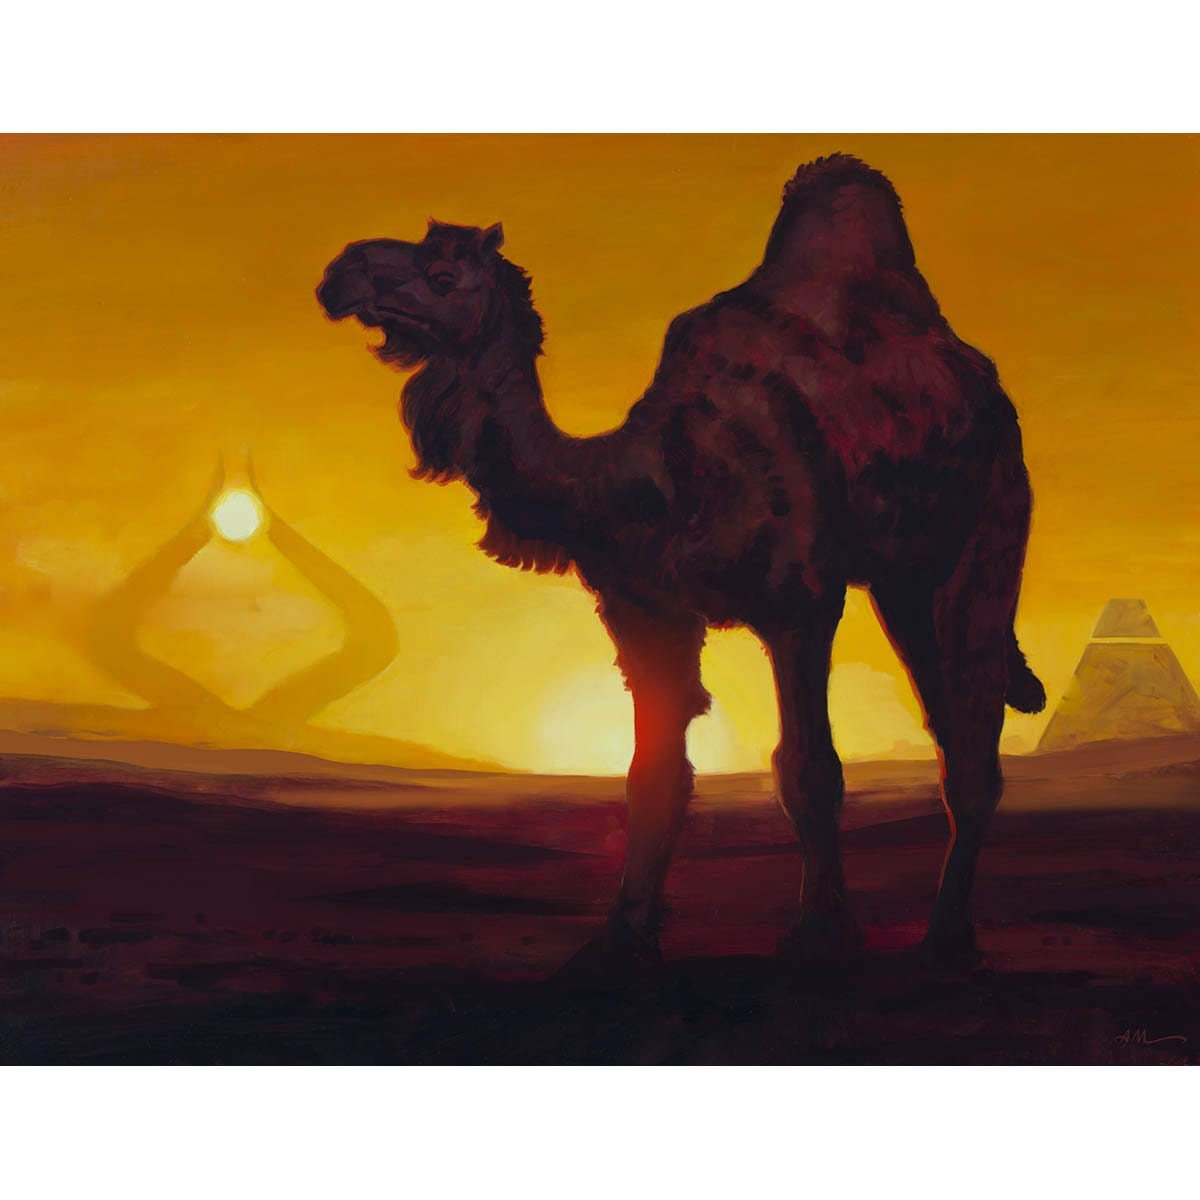 Solitary Camel Print - Print - Original Magic Art - Accessories for Magic the Gathering and other card games